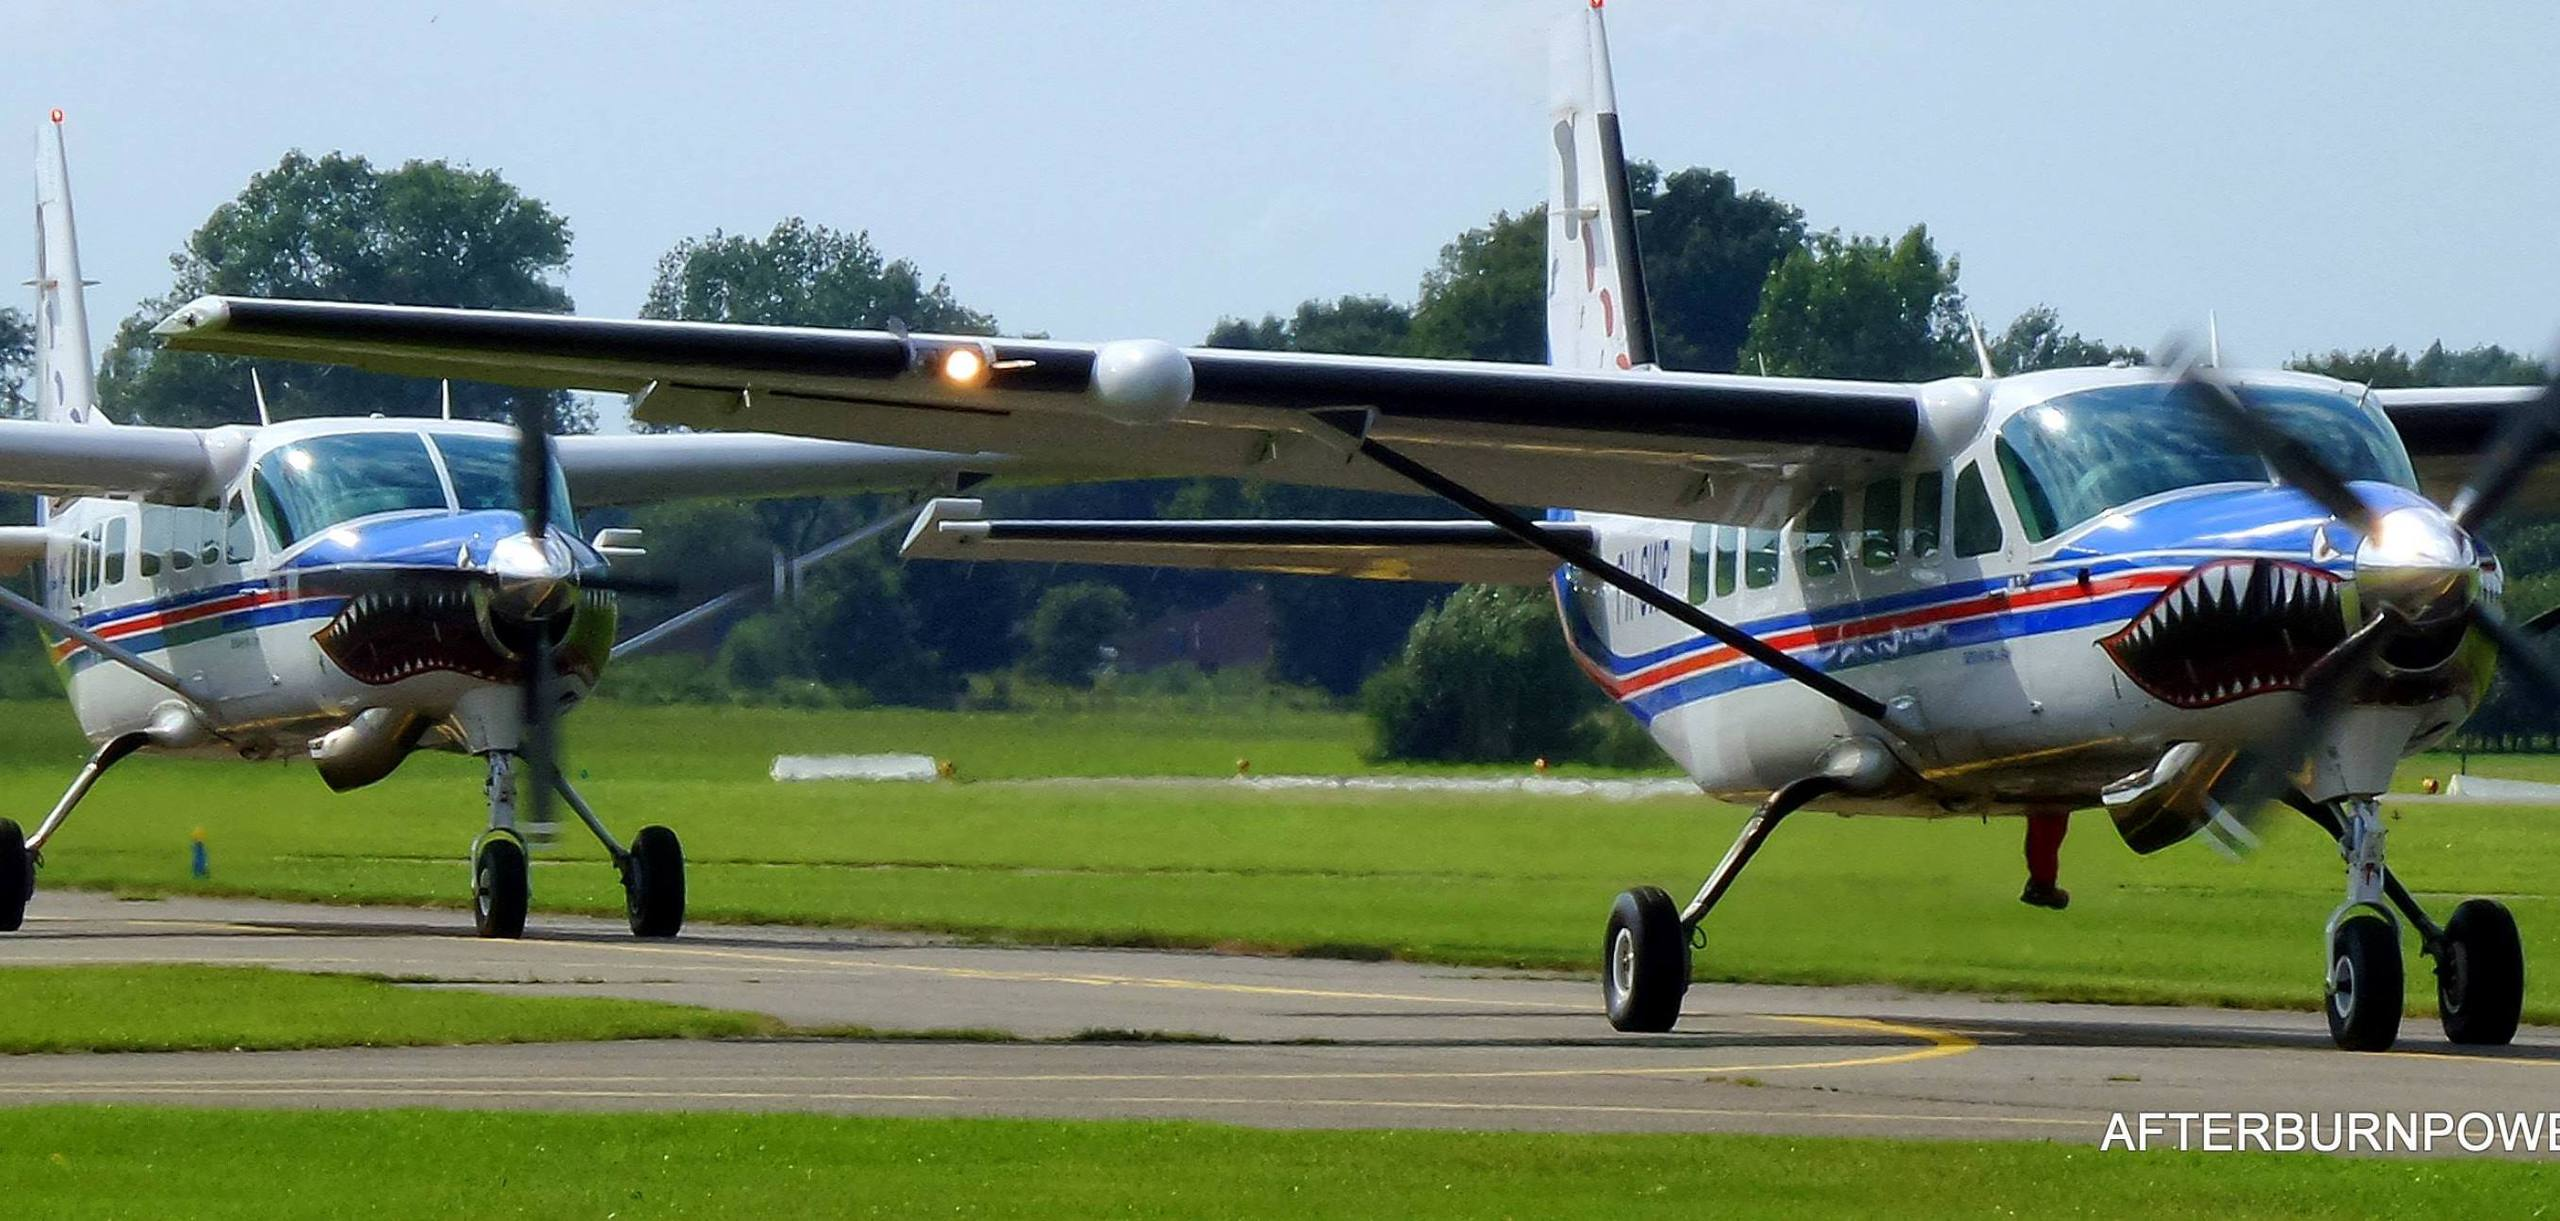 Skydive Teuge aircraft